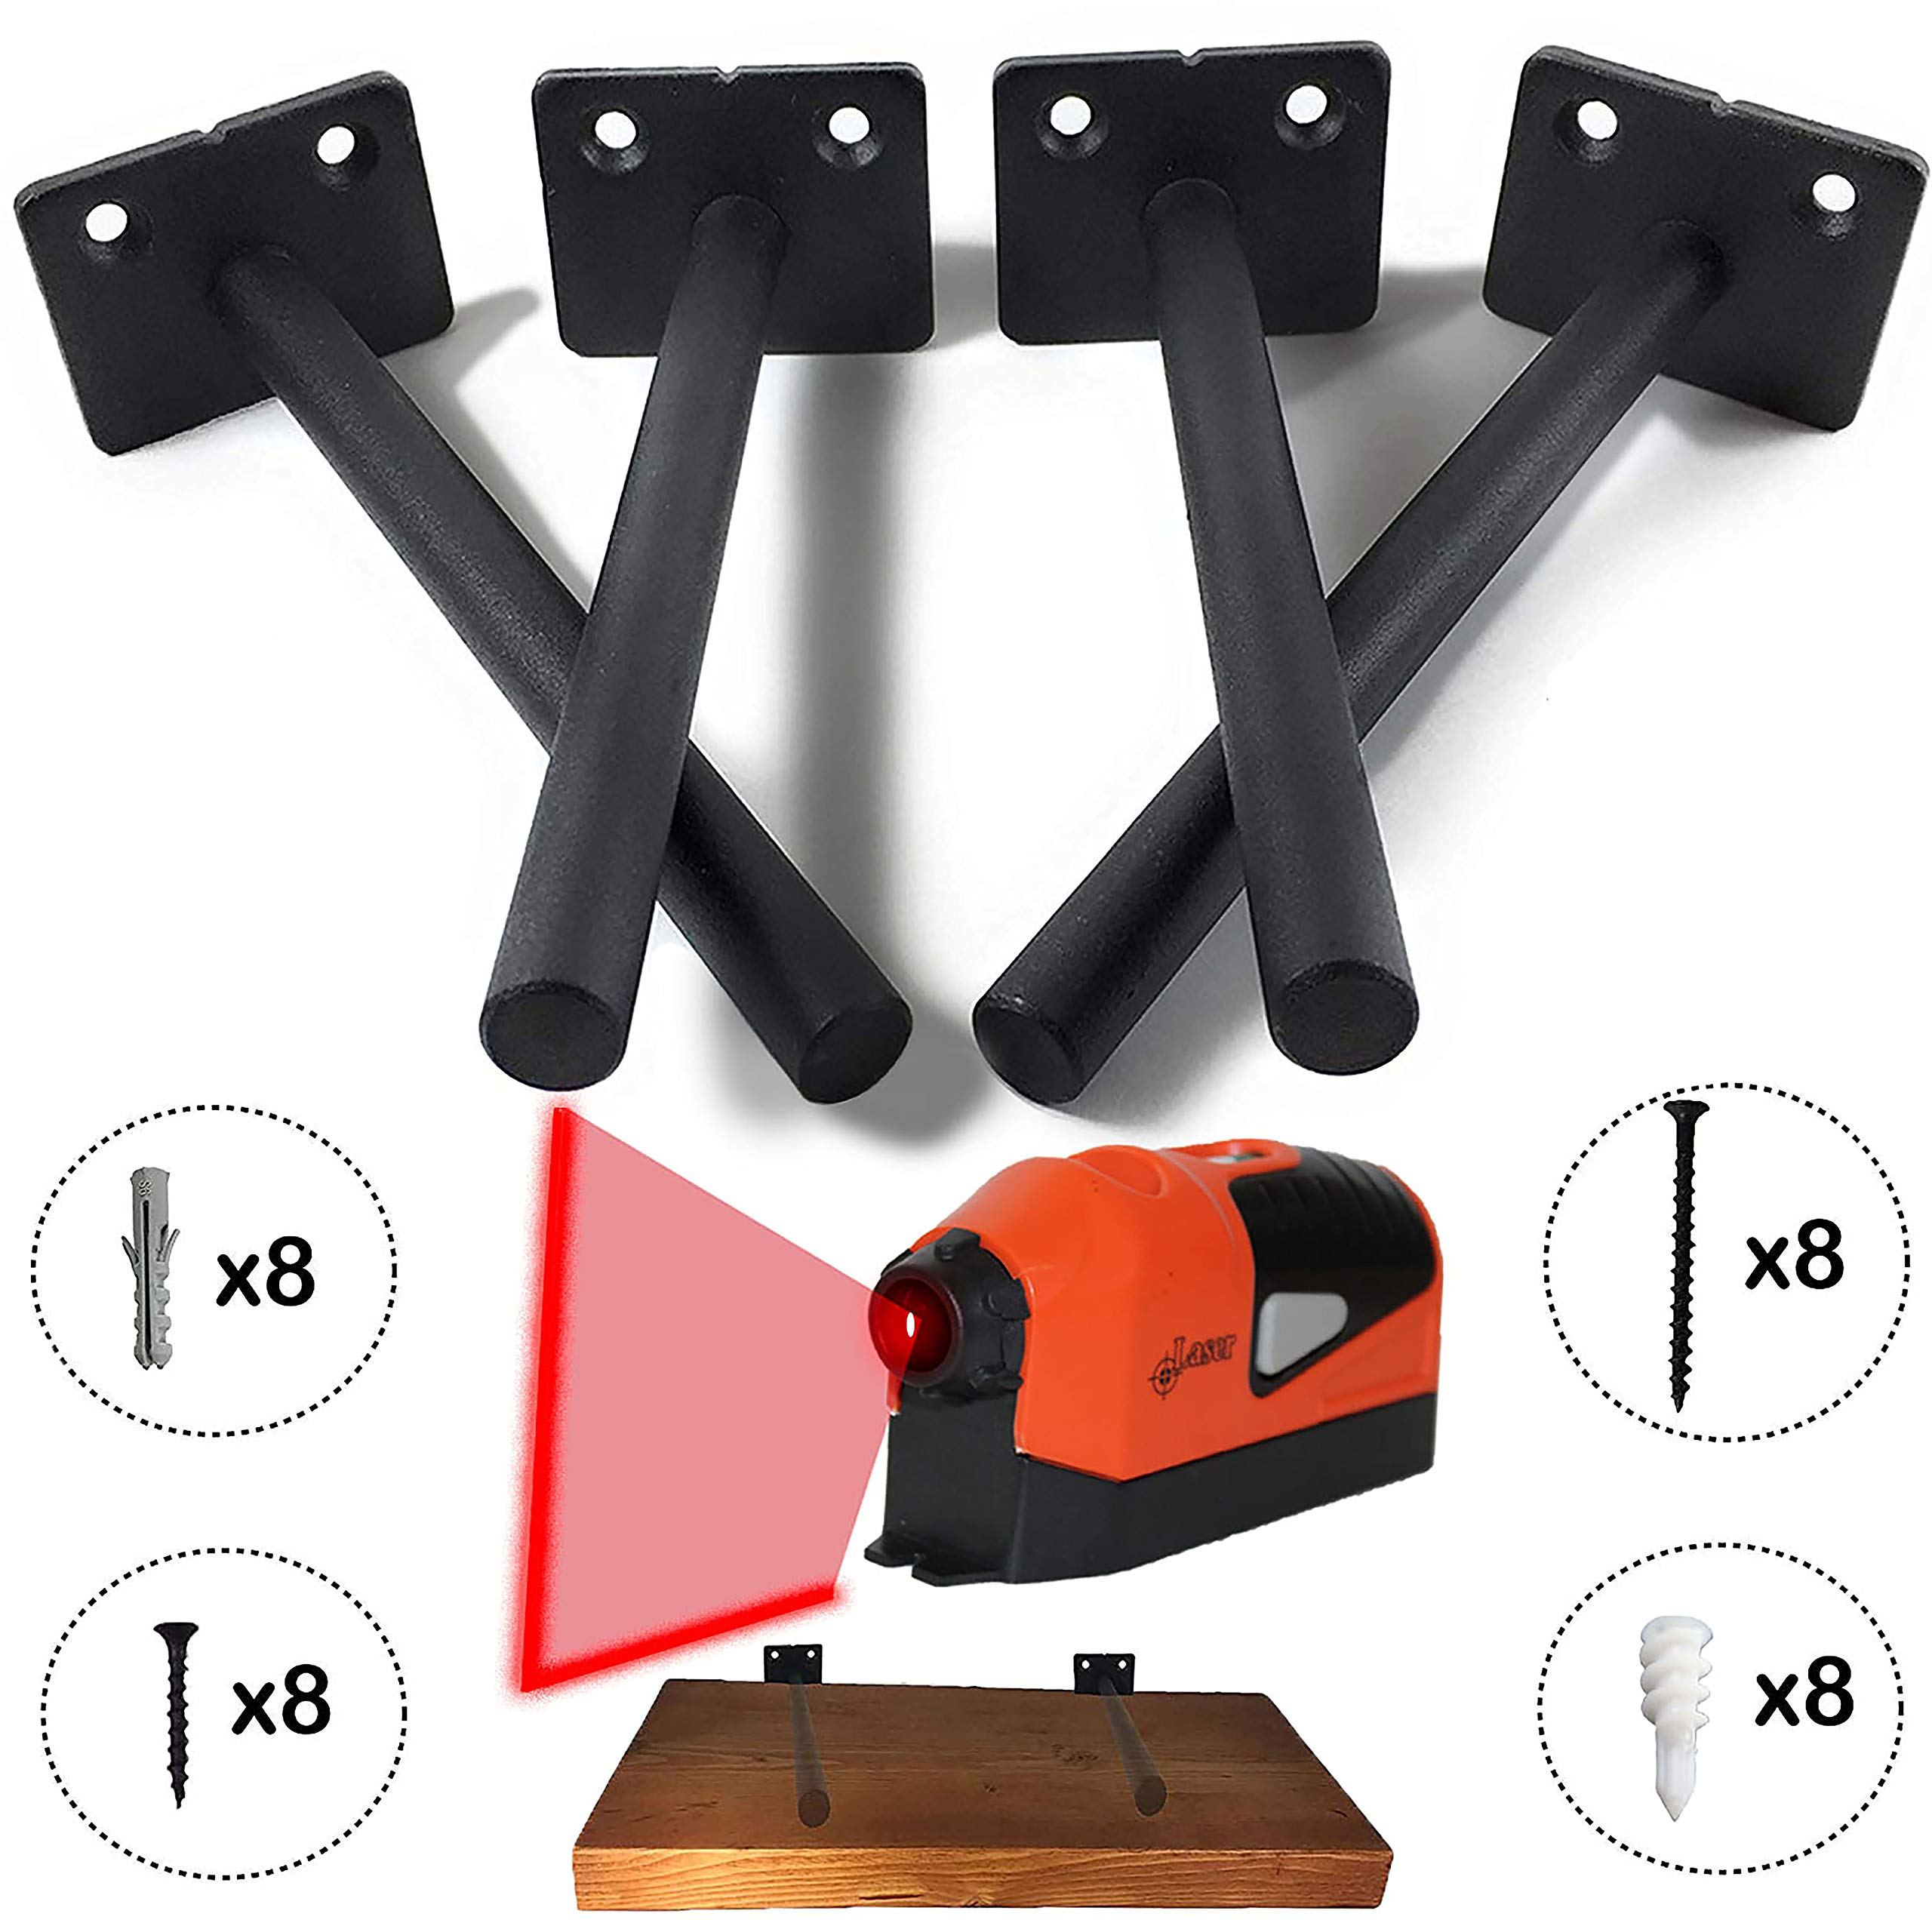 6'' Heavy Duty Floating Shelf Support Brackets - Includes Laser Level To Guarantee Level Shelves - Includes Wall Plugs and Screws -4 Pcs of Black Solid Steel Bracket -DIY Concealed Shelf (Large Size)